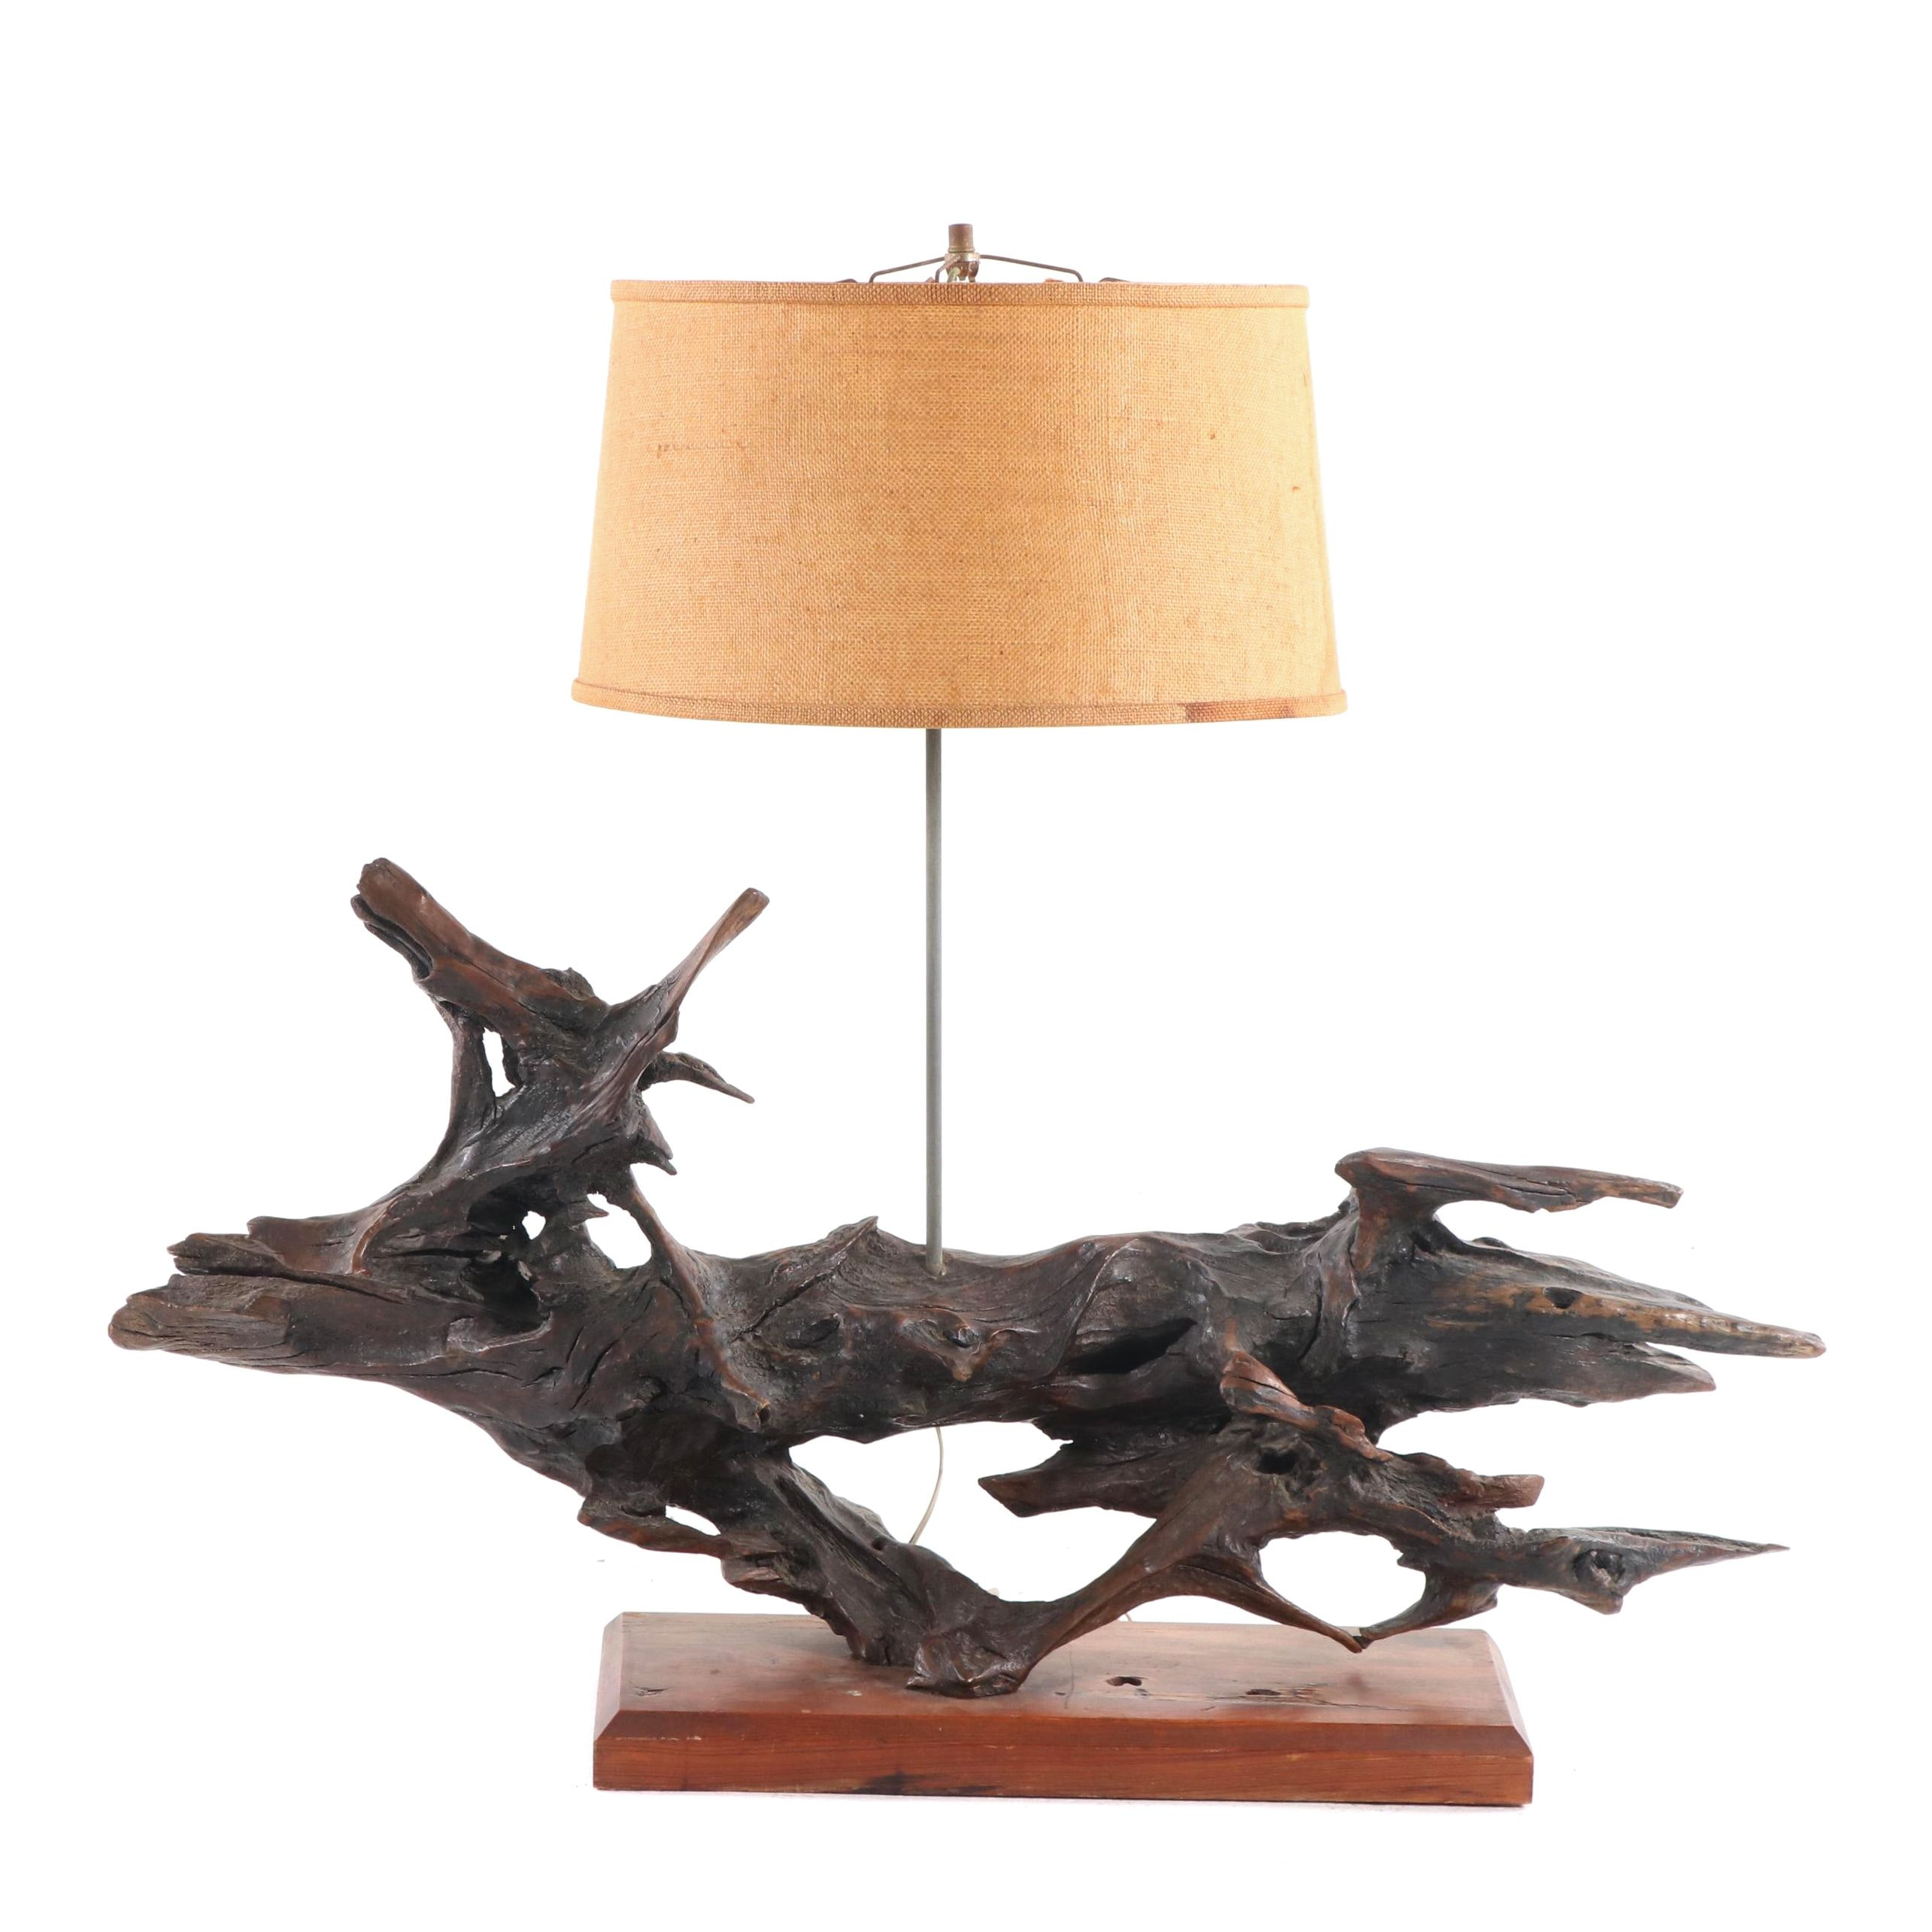 Mounted Driftwood Table Lamp with Shade, Mid to Late 20th Century